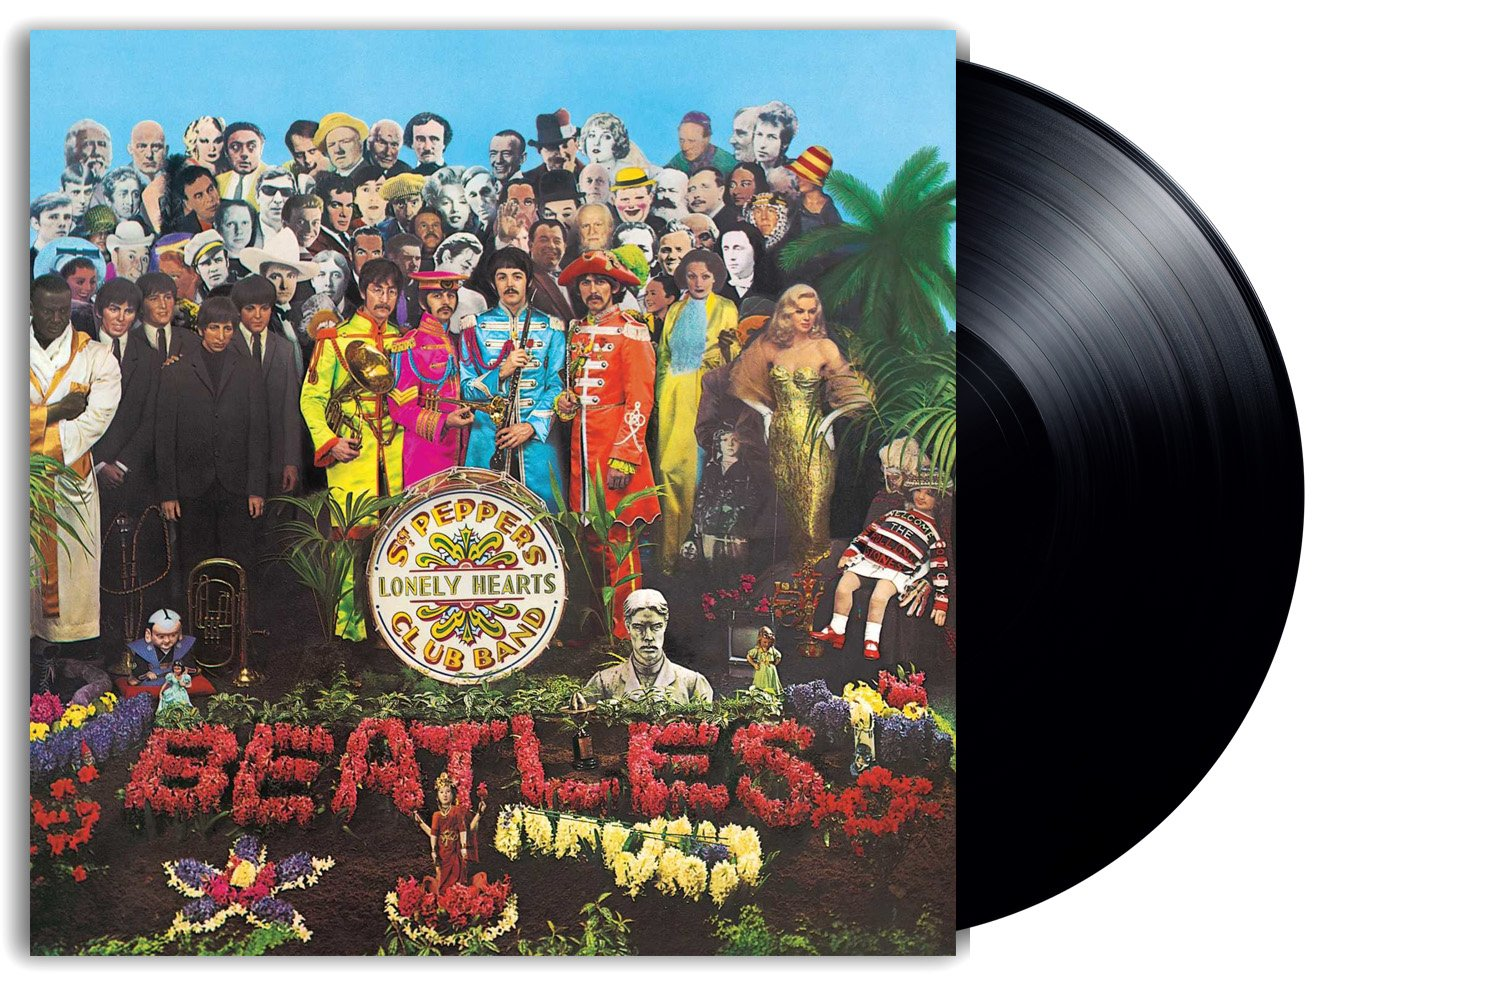 Sgt. Pepper's Lonely Hearts Club Band [12 inch Analog]                                                                                                                                                                                                                                                                                                                                                                                                <span class=